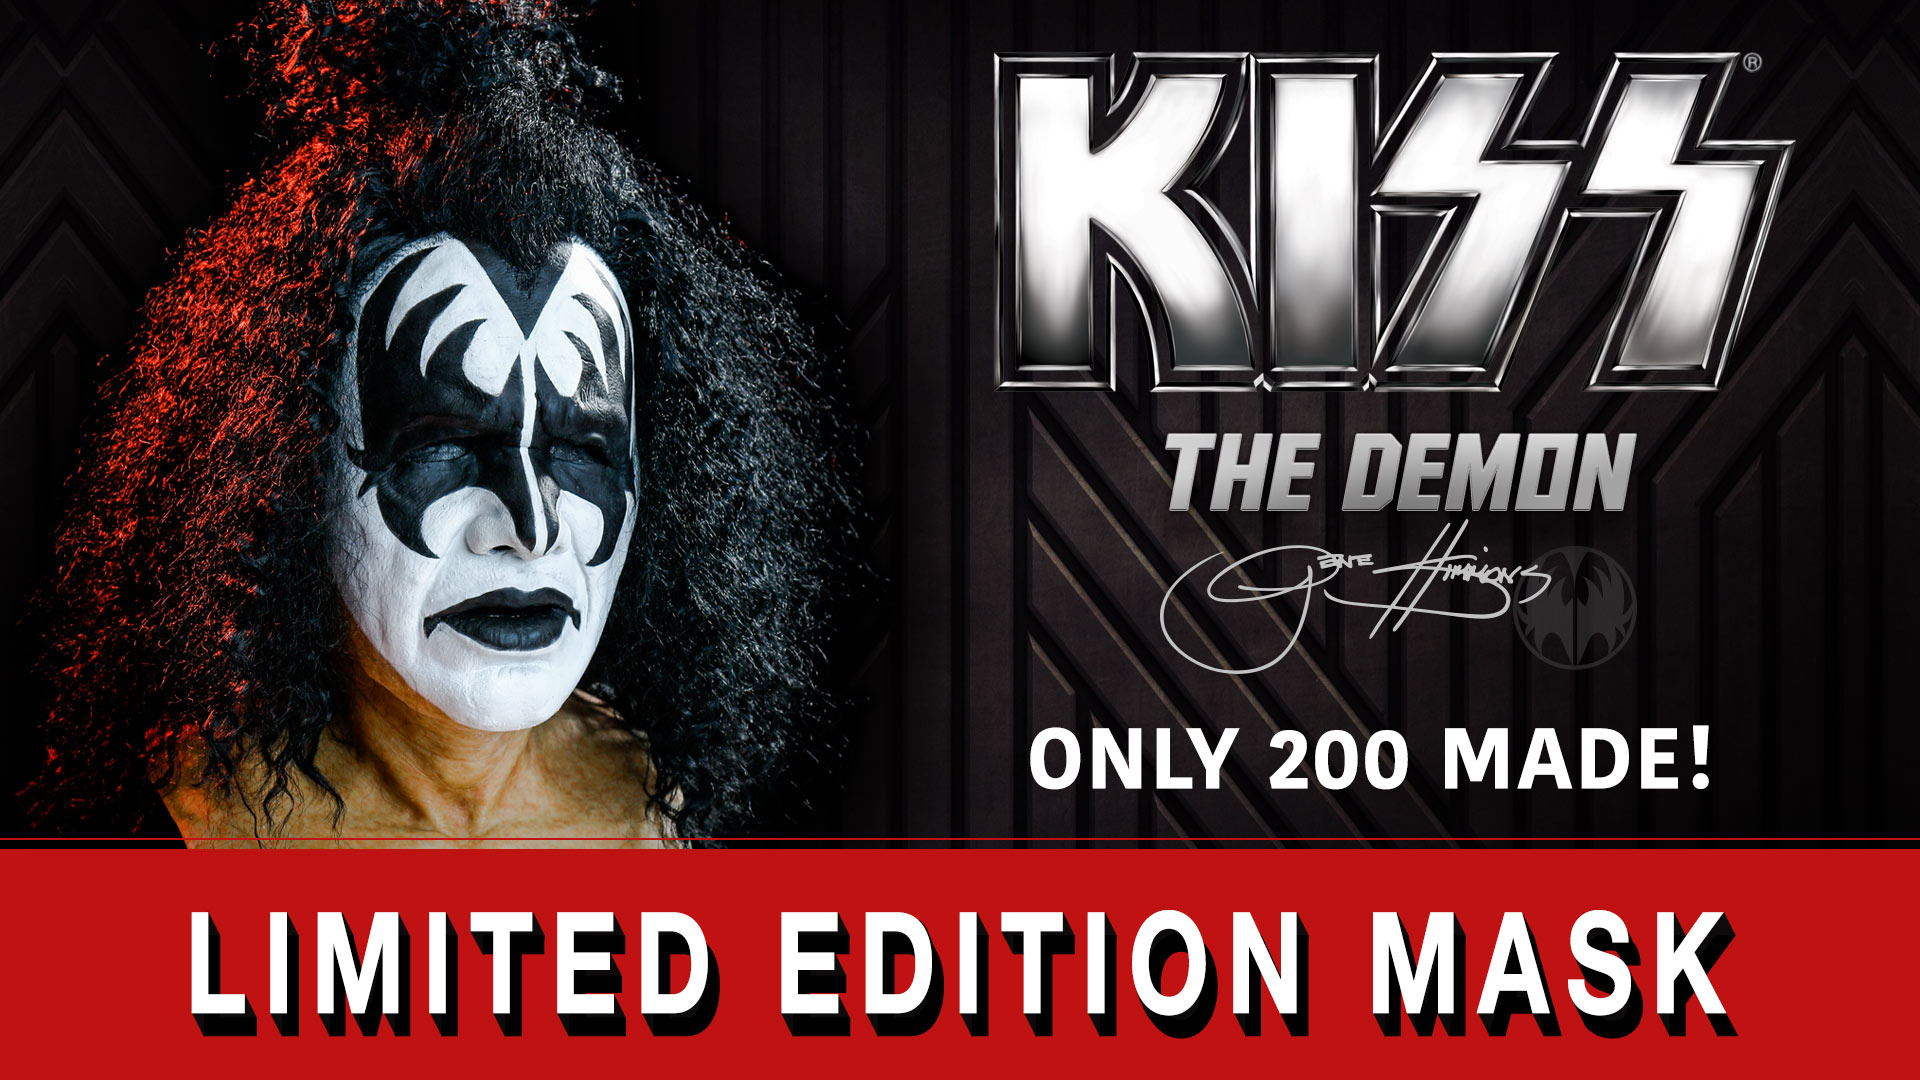 Authentic Limited Edition KISS Gene Simmons Demon Mask